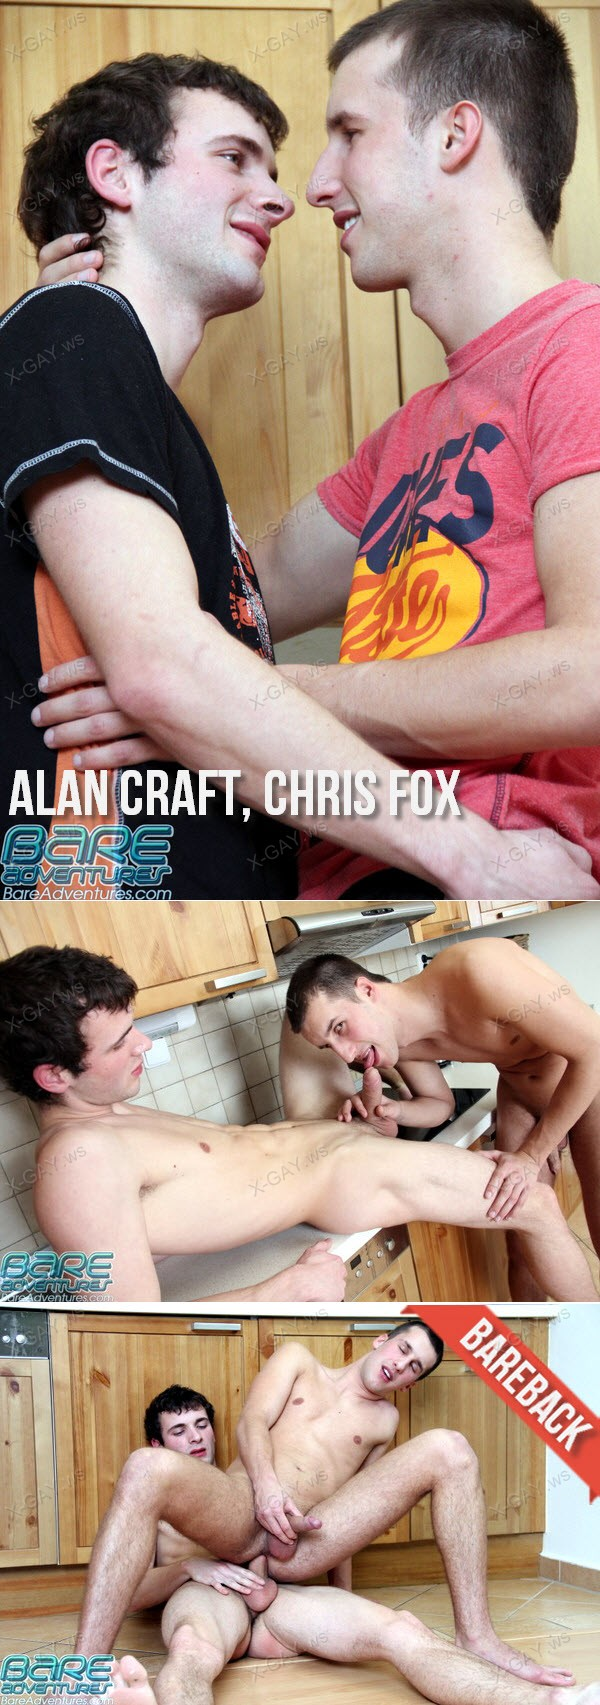 BareAdventures: Alan Craft, Chris Fox (Bareback)